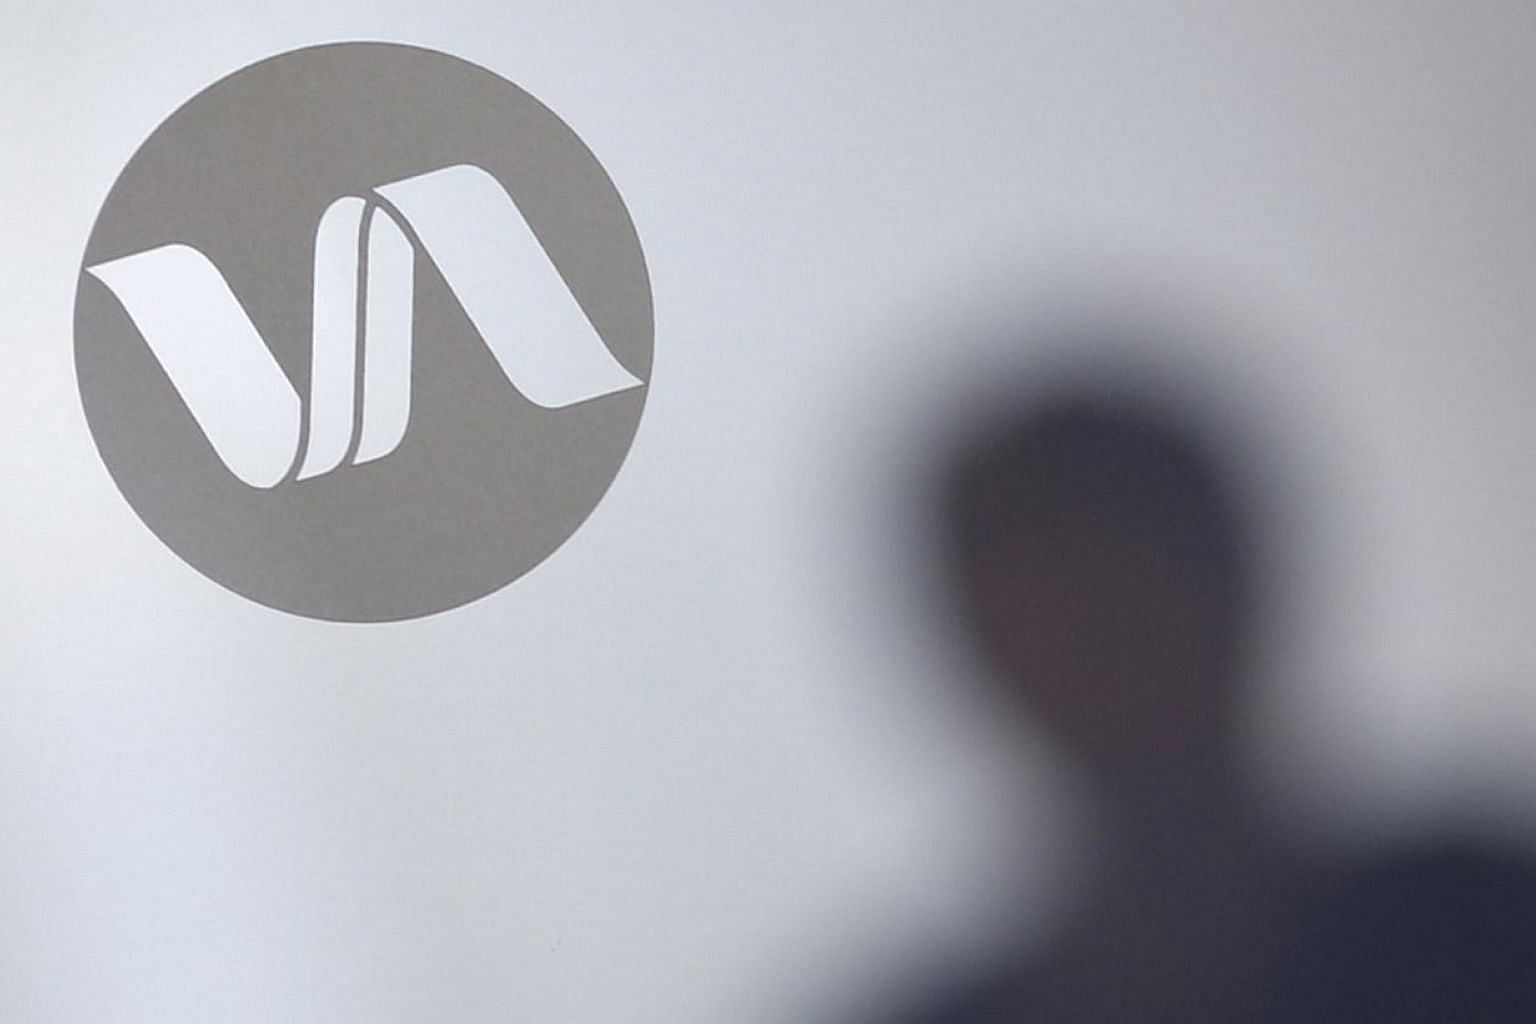 Commodities trader Noble Group announced it has bought more than 12 million shares for more than S$9.2 million, its third buyback within a week. -- PHOTO: REUTERS